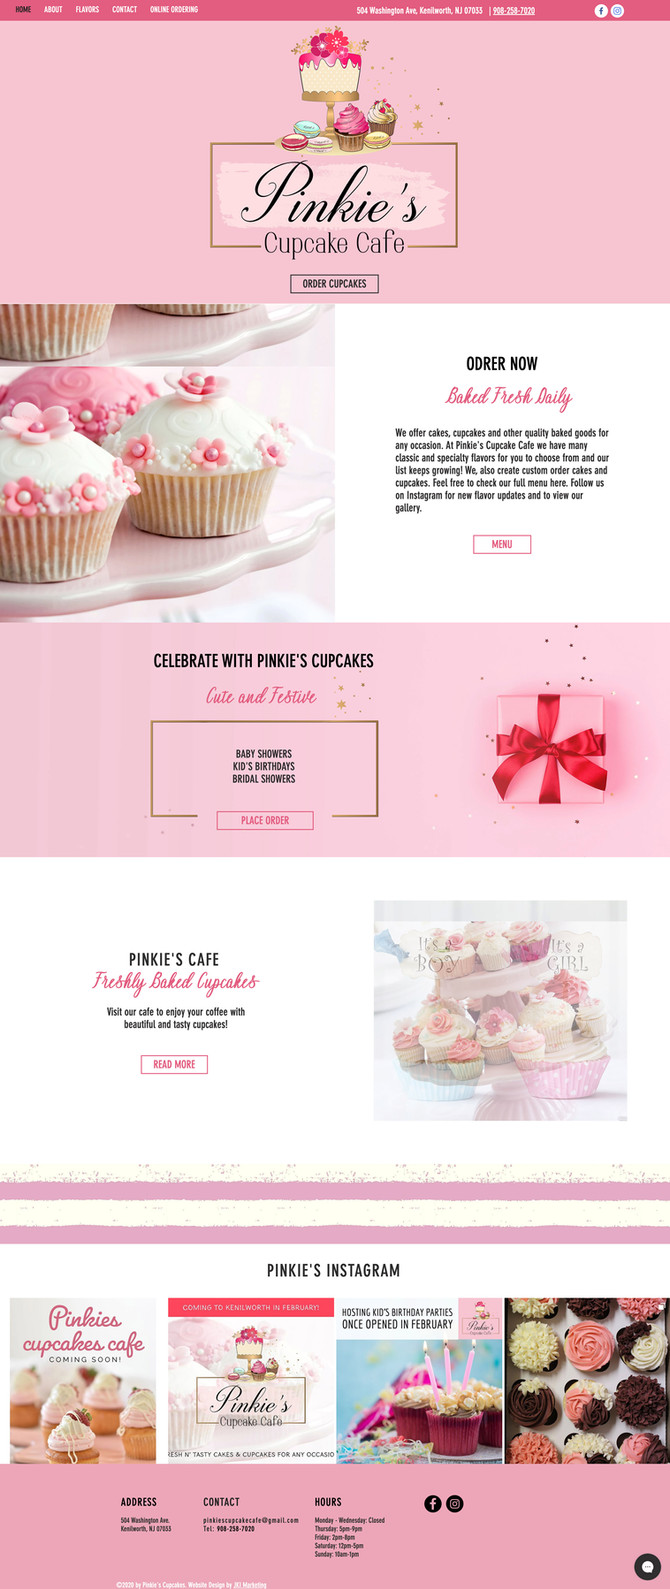 Website Design and Social Media Marketing for Pinkie's Cupcake Cafe